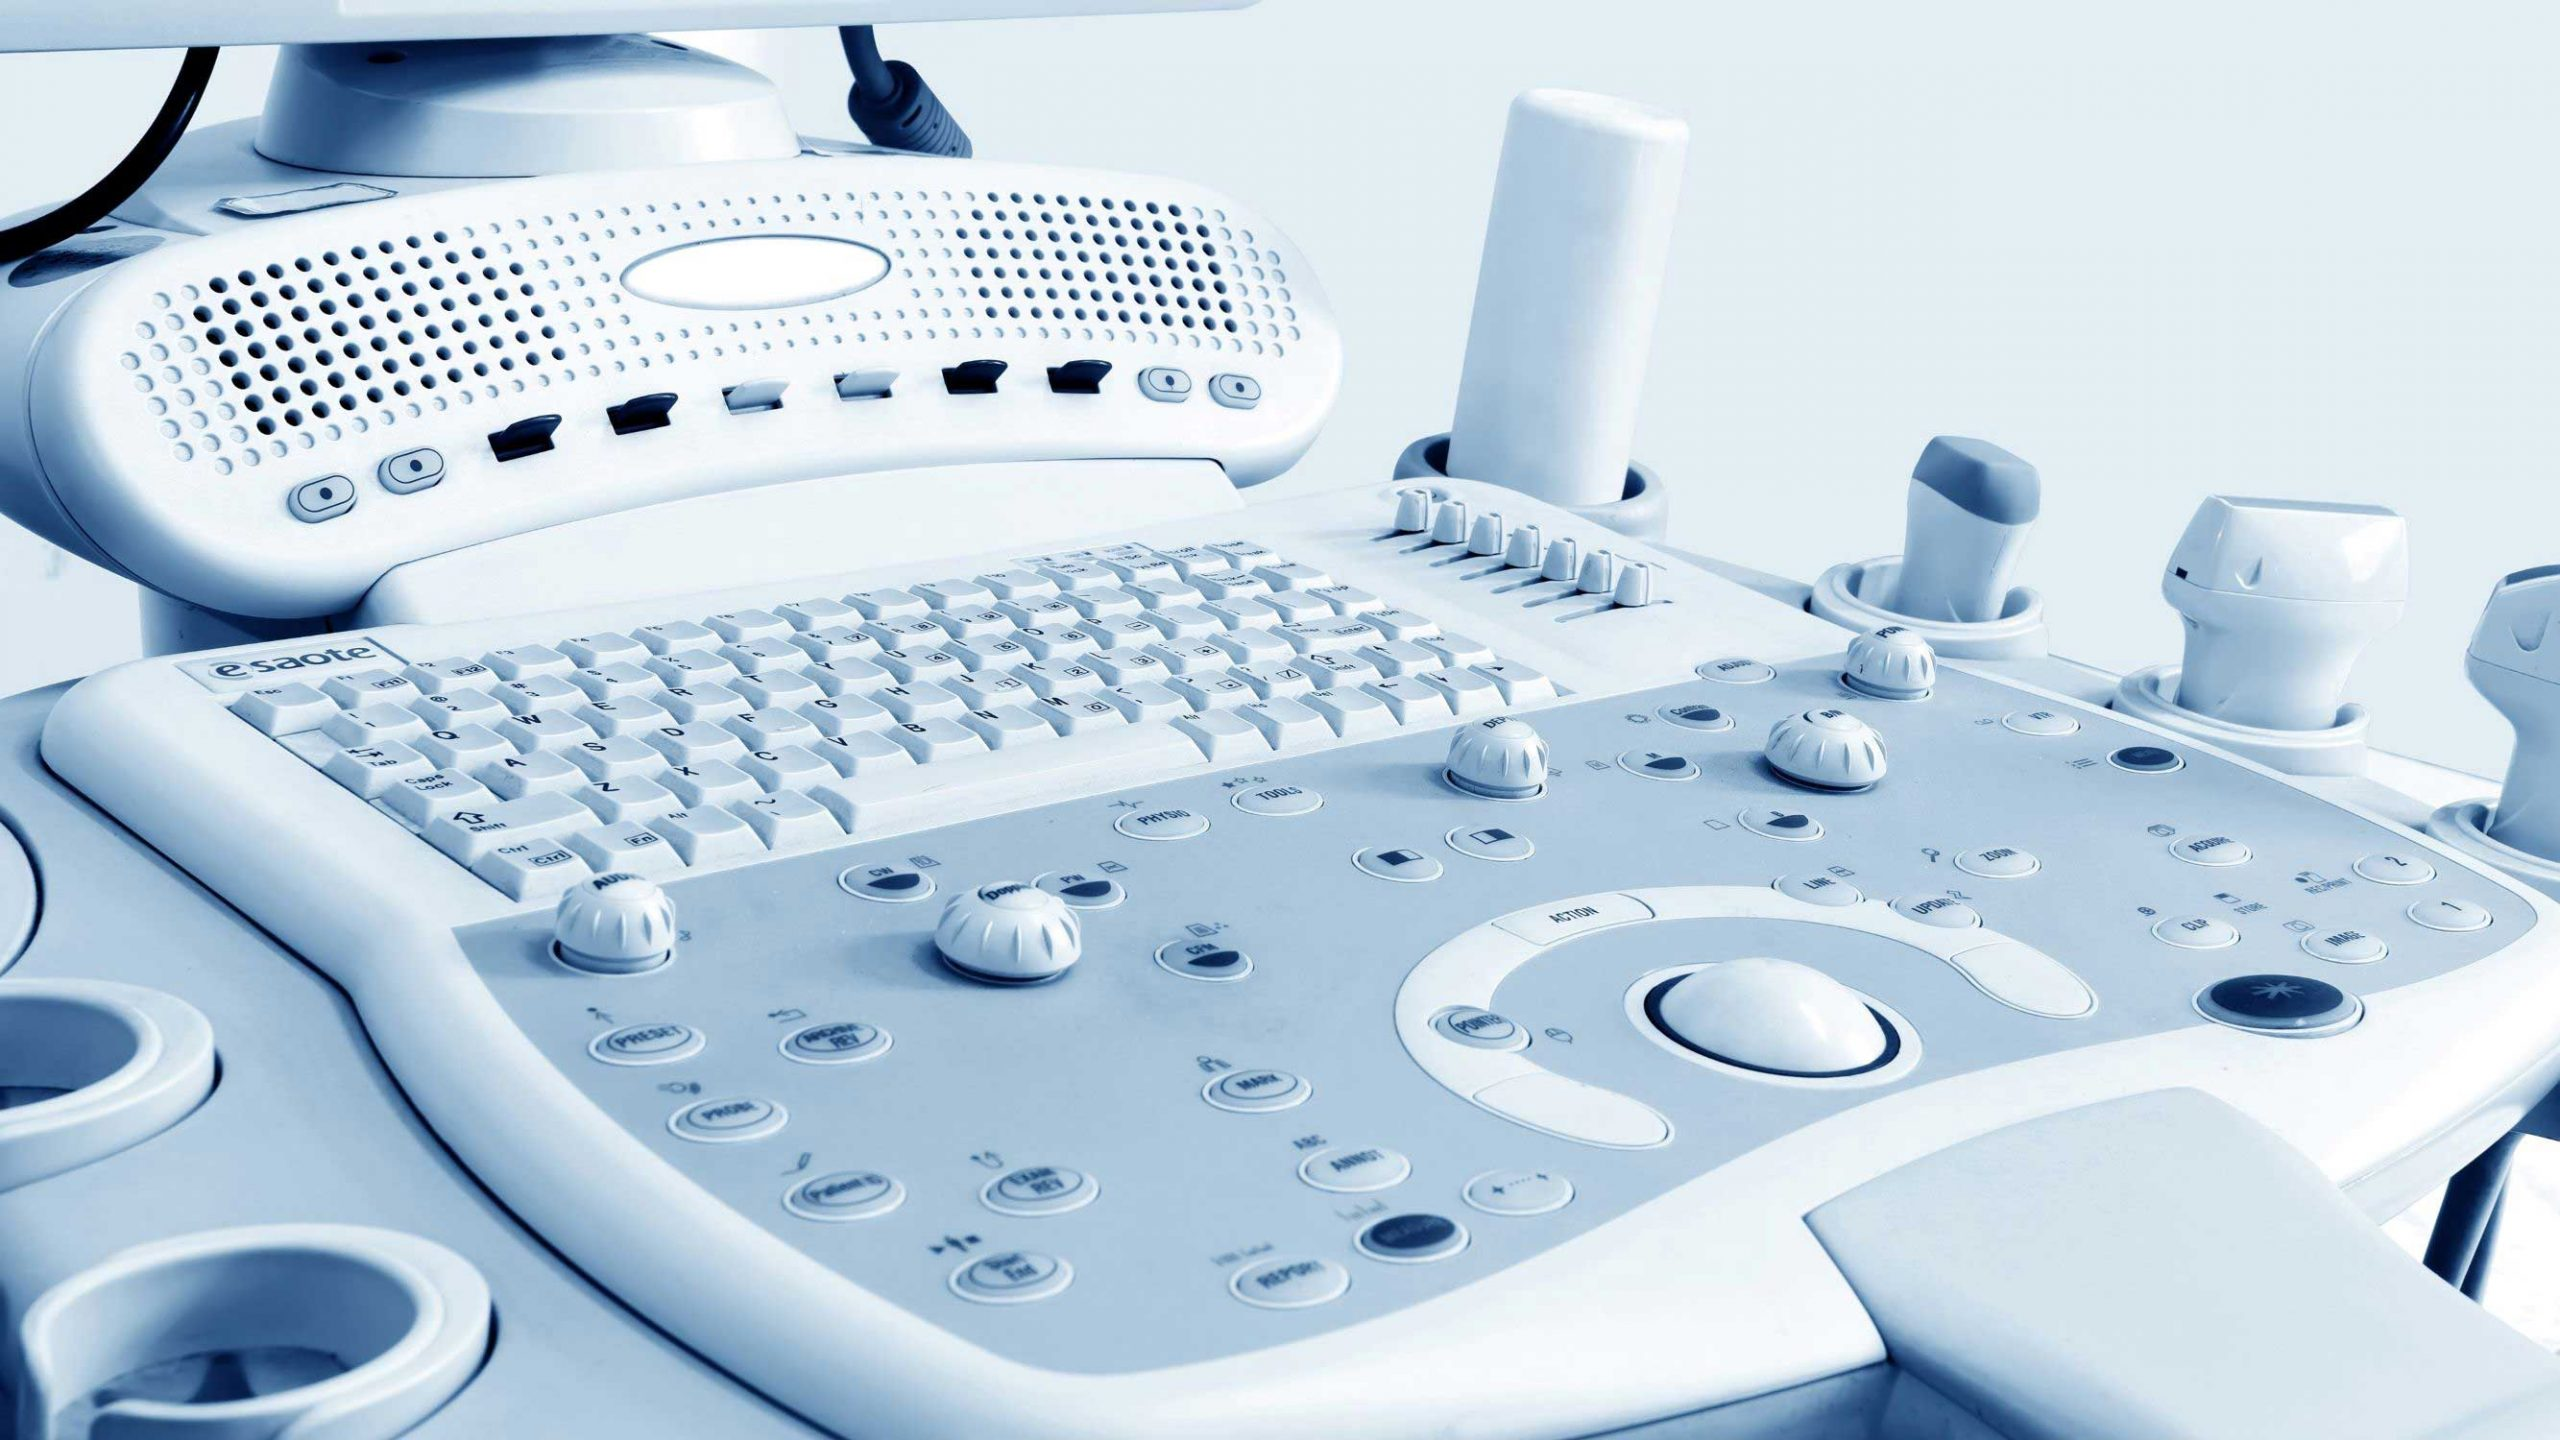 How to Find the Best GE Ultrasound Machine